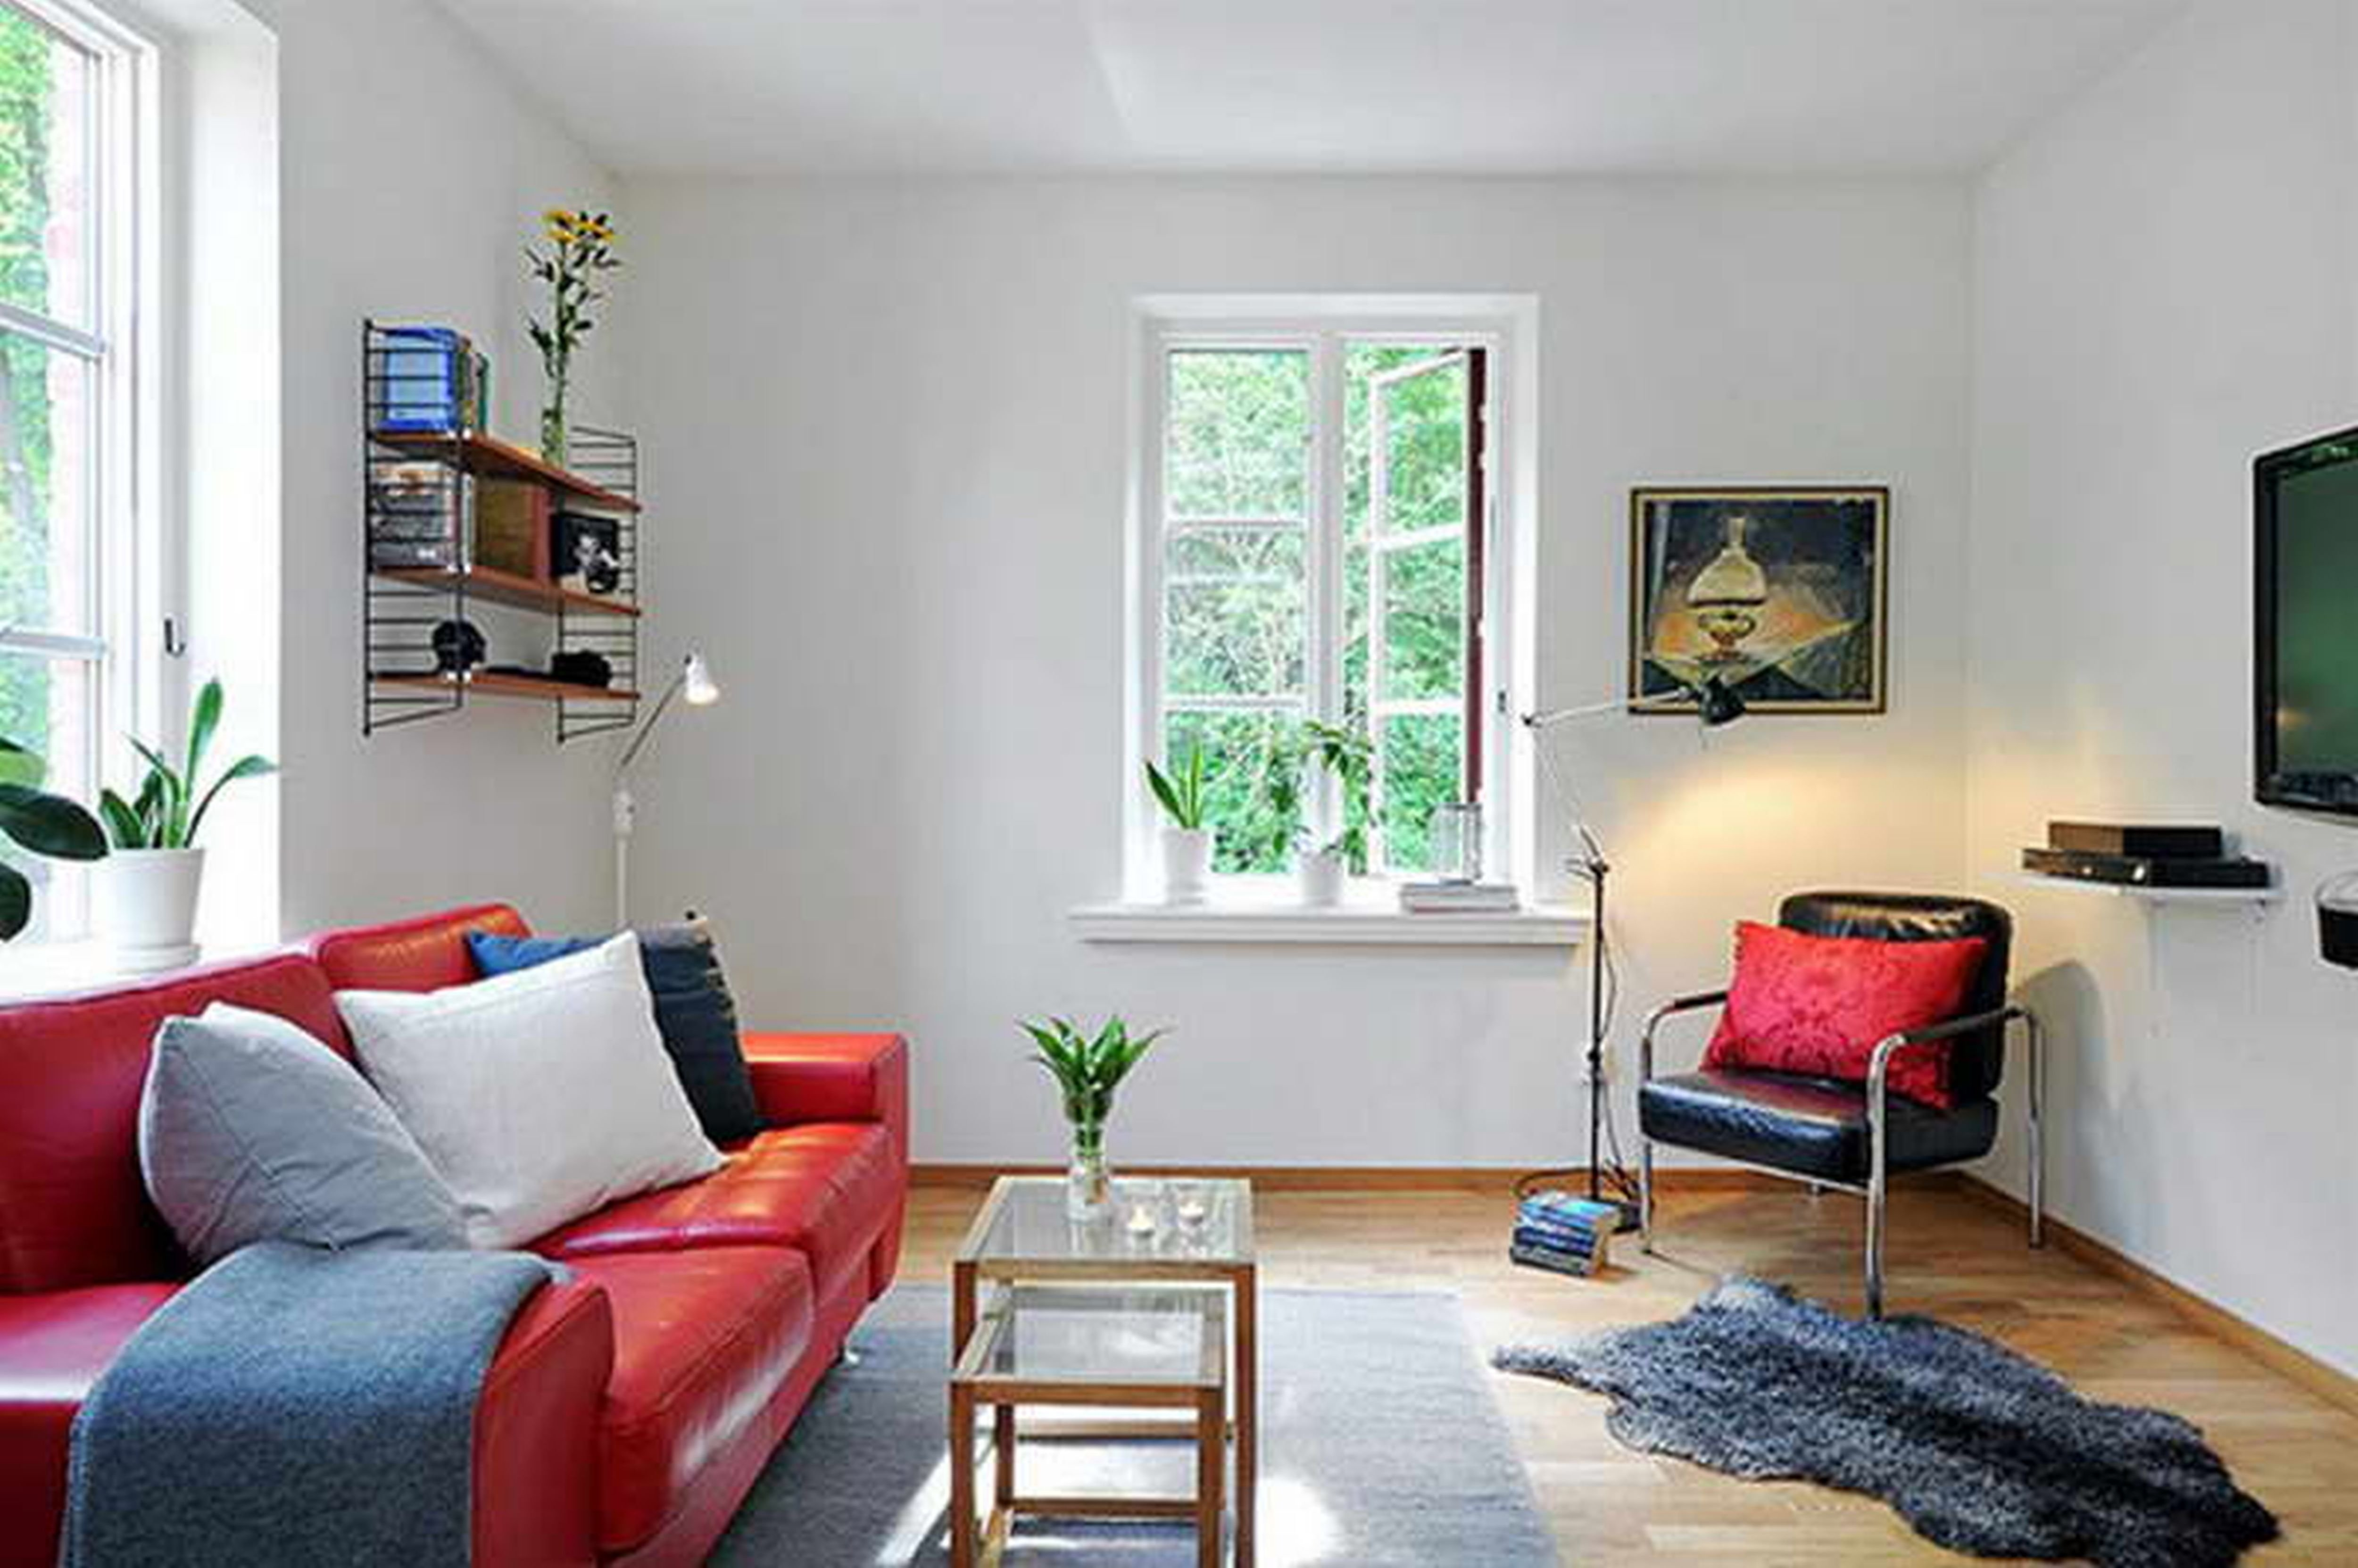 10 Perfect Apartment Decorating Ideas On A Budget apartment decor ideas on a budget white small studio pretty cheap 2021